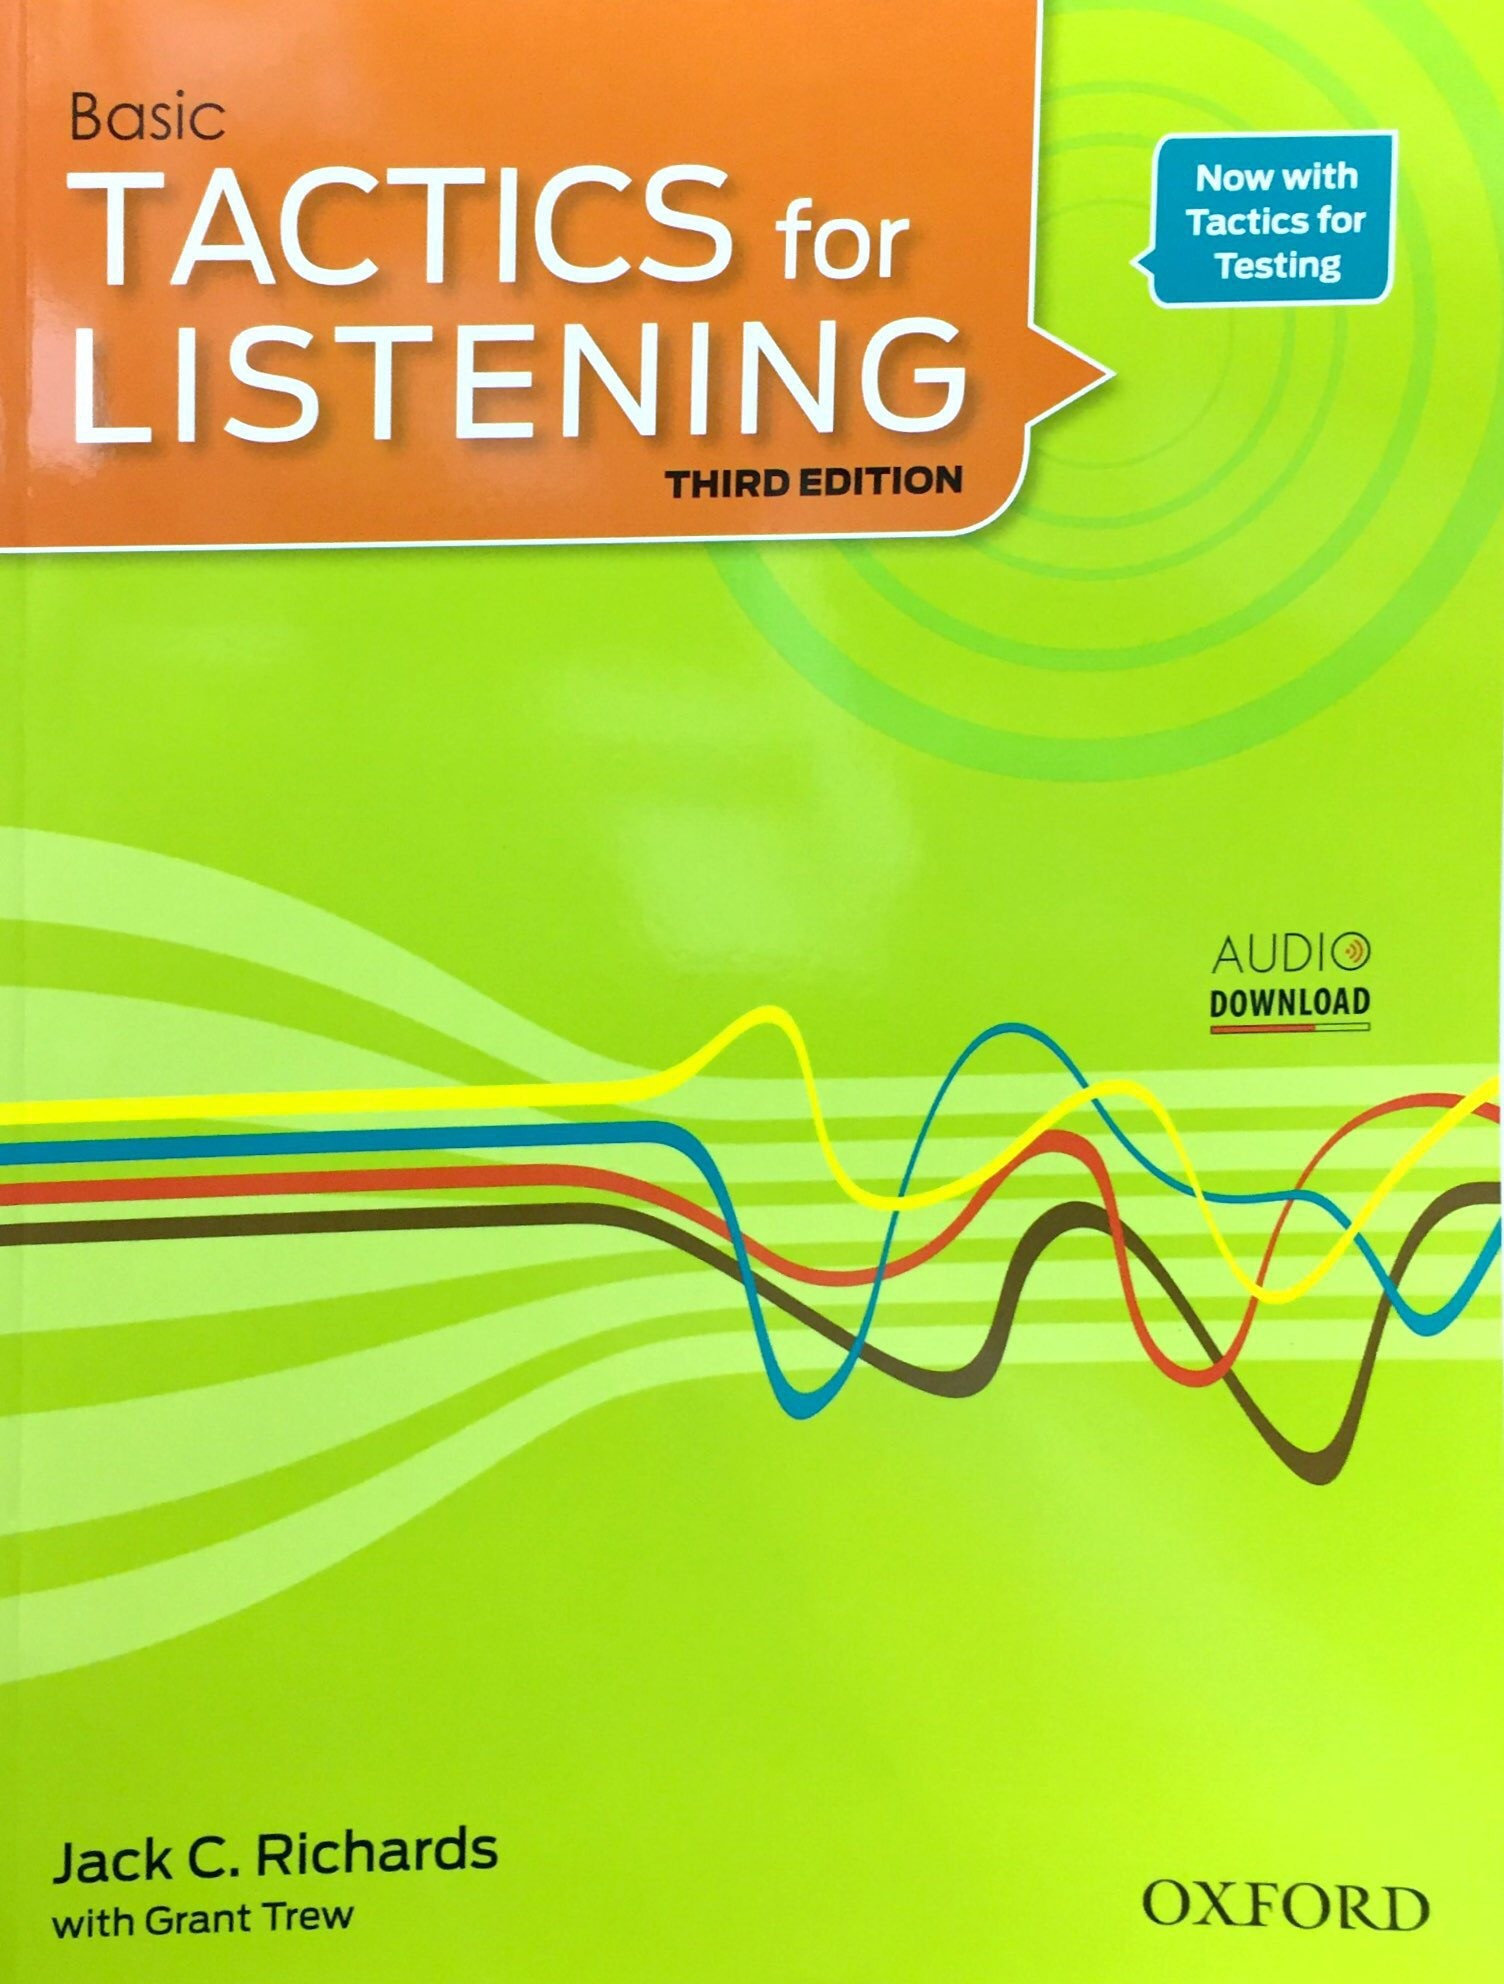 basic tactics for listening 3rd edition 1 2018 09 13 15 51 14